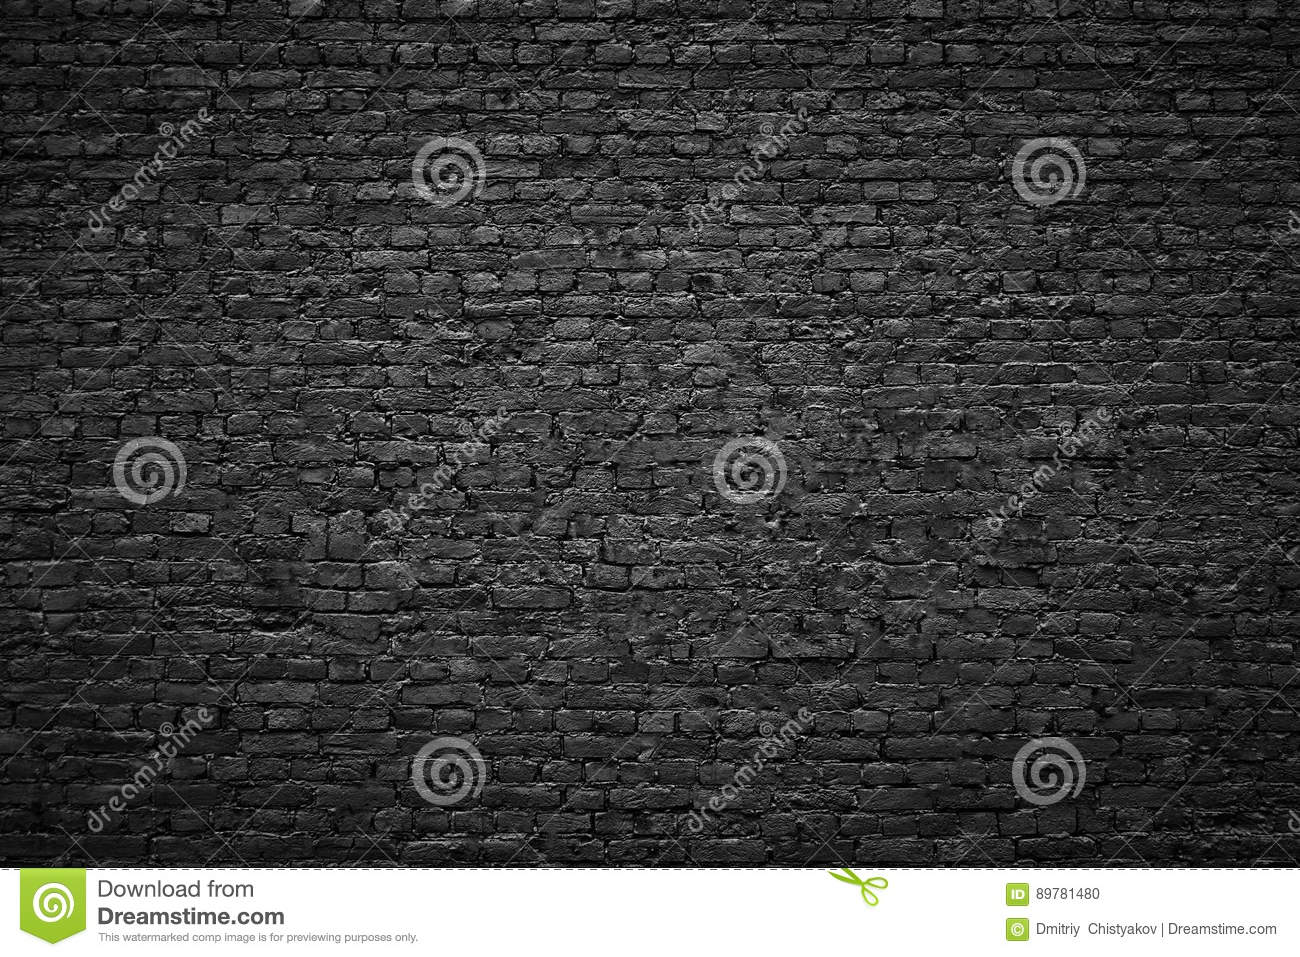 fond sombre mur de briques noir de texture en pierre fonc e photo stock image du fond brique. Black Bedroom Furniture Sets. Home Design Ideas